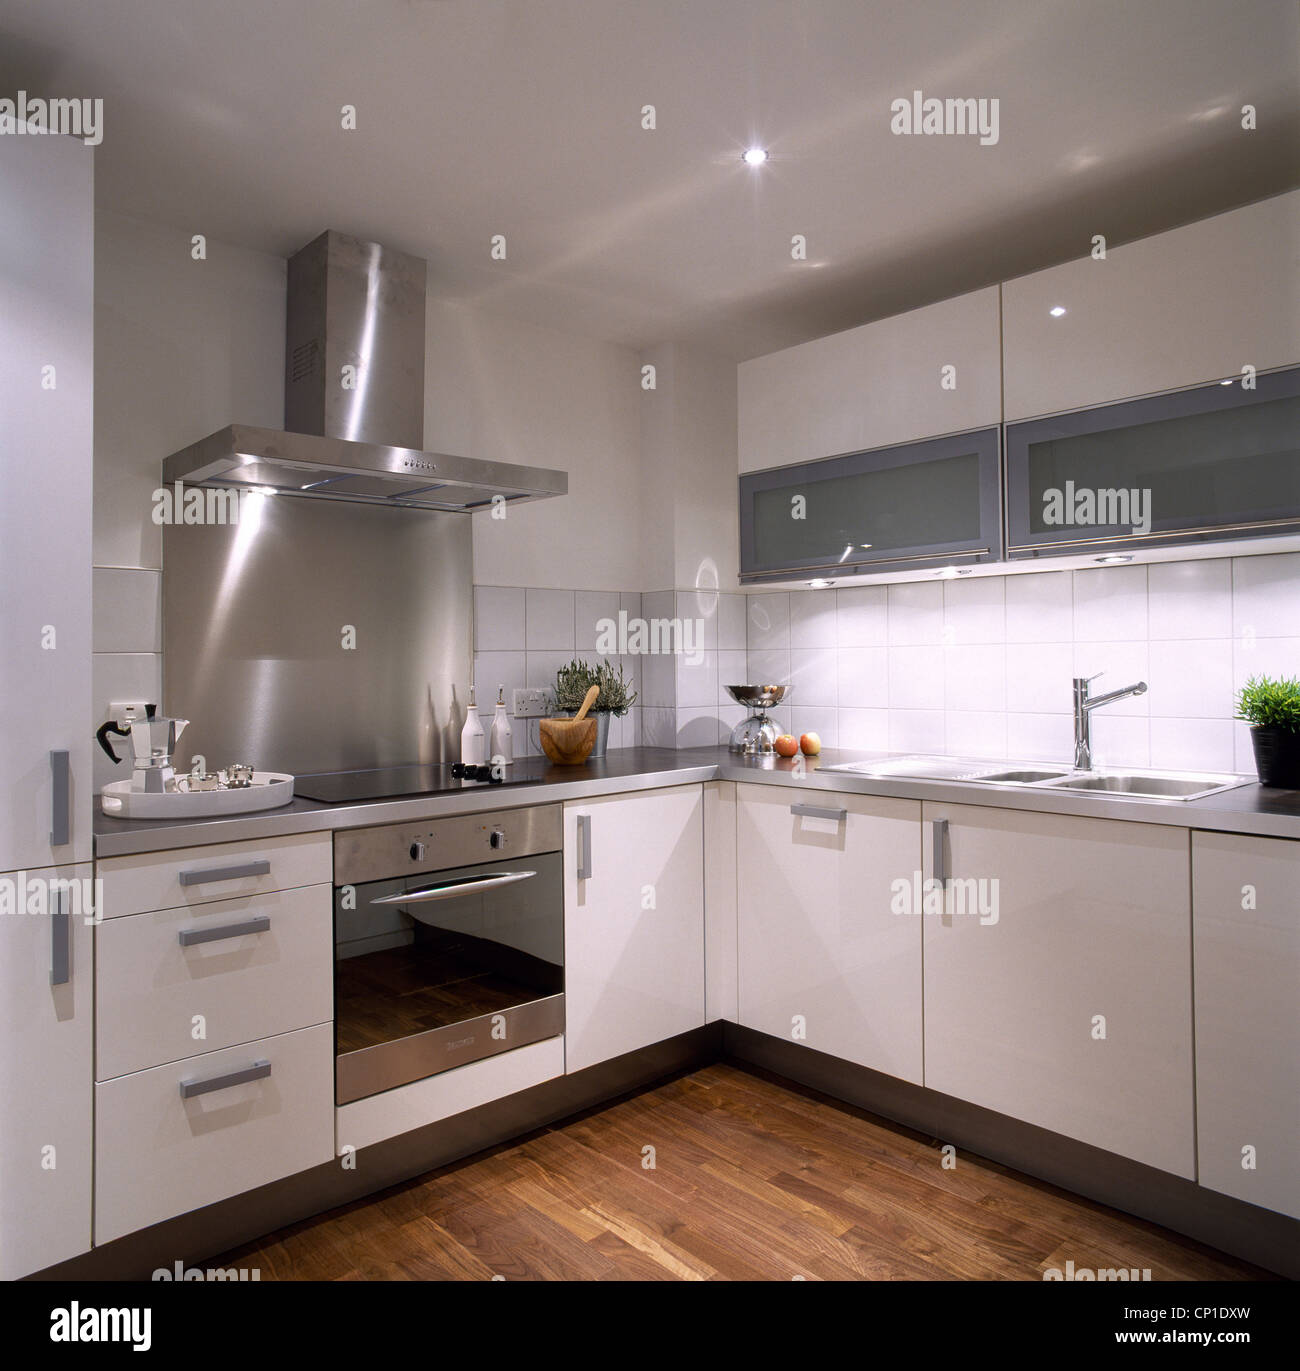 kitchen extractor fan. A Modern White Kitchen With Units, Stainless Steel Integral Oven And Extractor Fan, Wooden Floor Fan